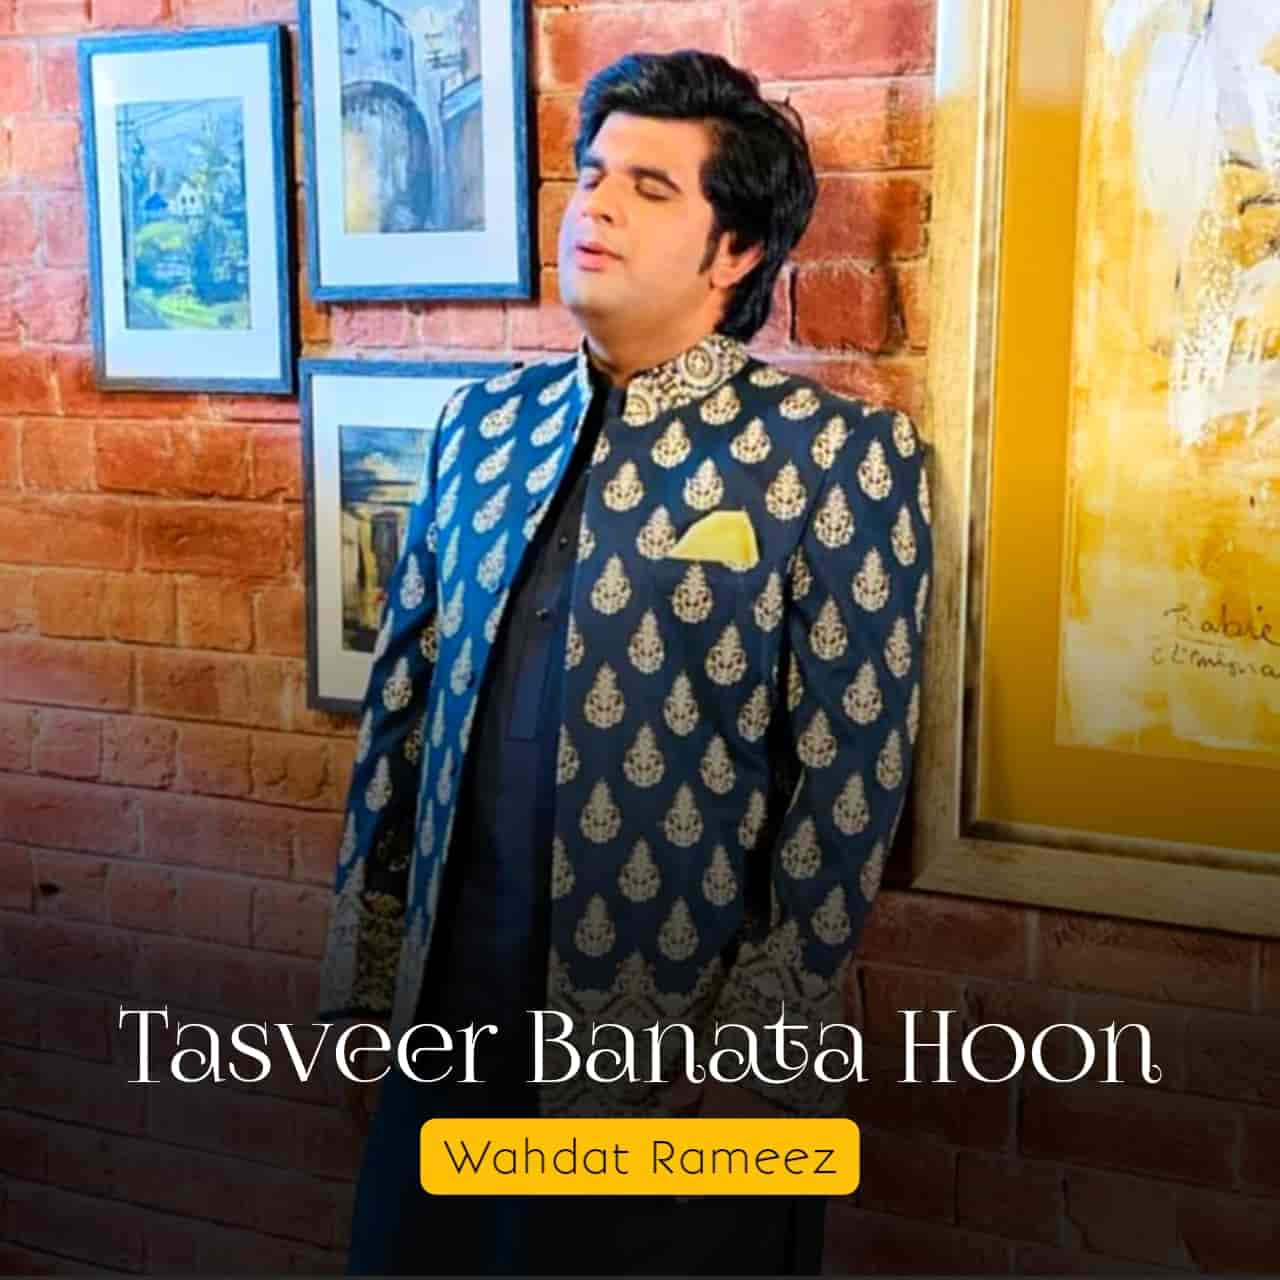 This song was again sung by Sufi singer Wahdat Rameez in his own style. The lyricist of this song is Khumar Barabankwi.